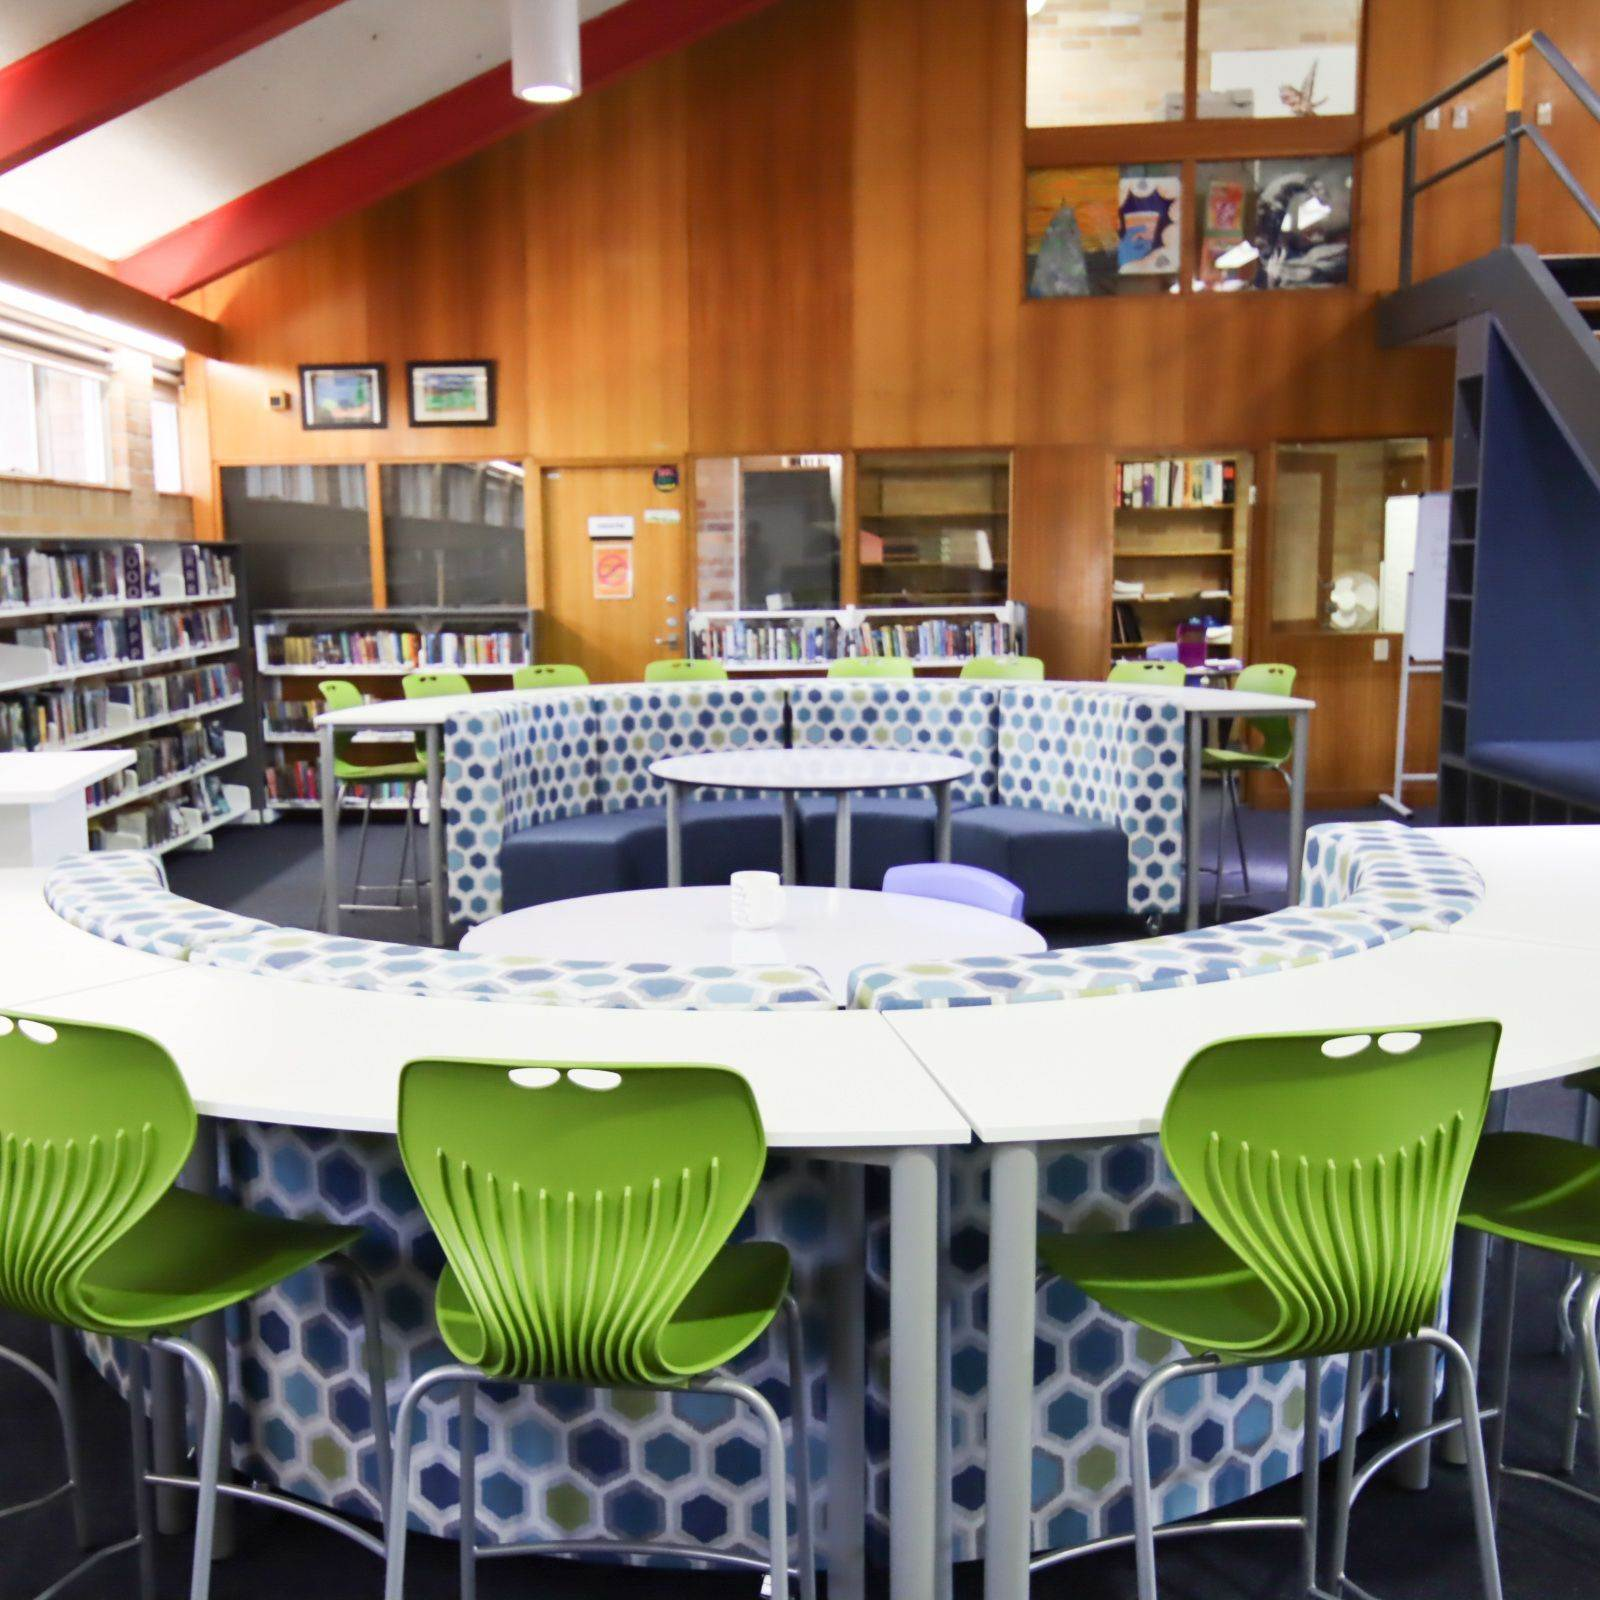 classroom space in library with stools and lounges